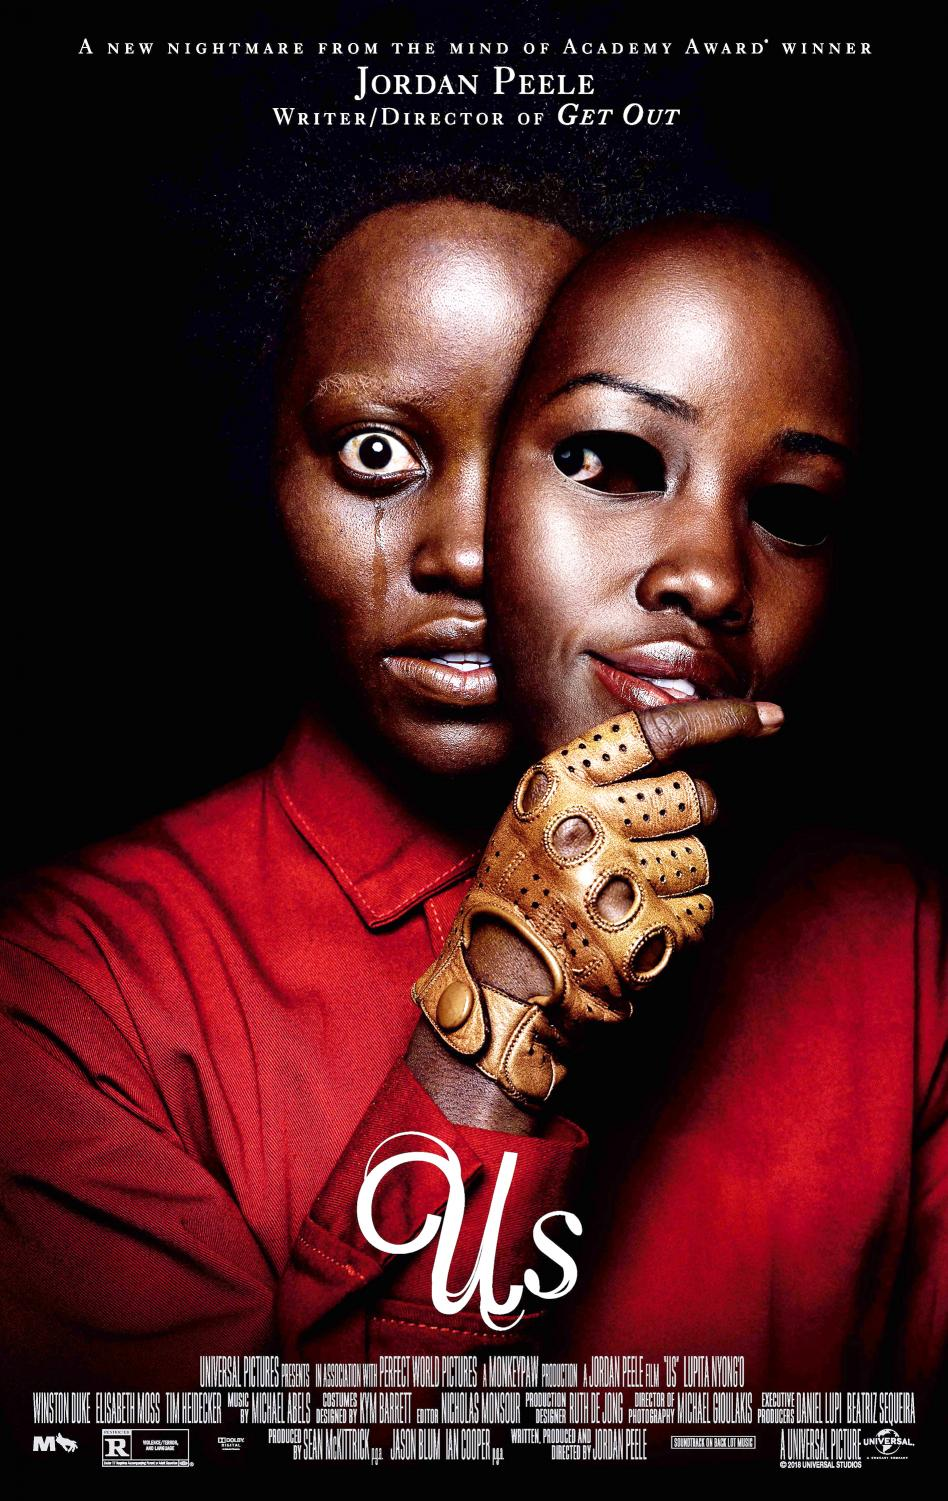 New horror film Us, written and directed by actor Jordan Peele, showed in theaters on March 22.